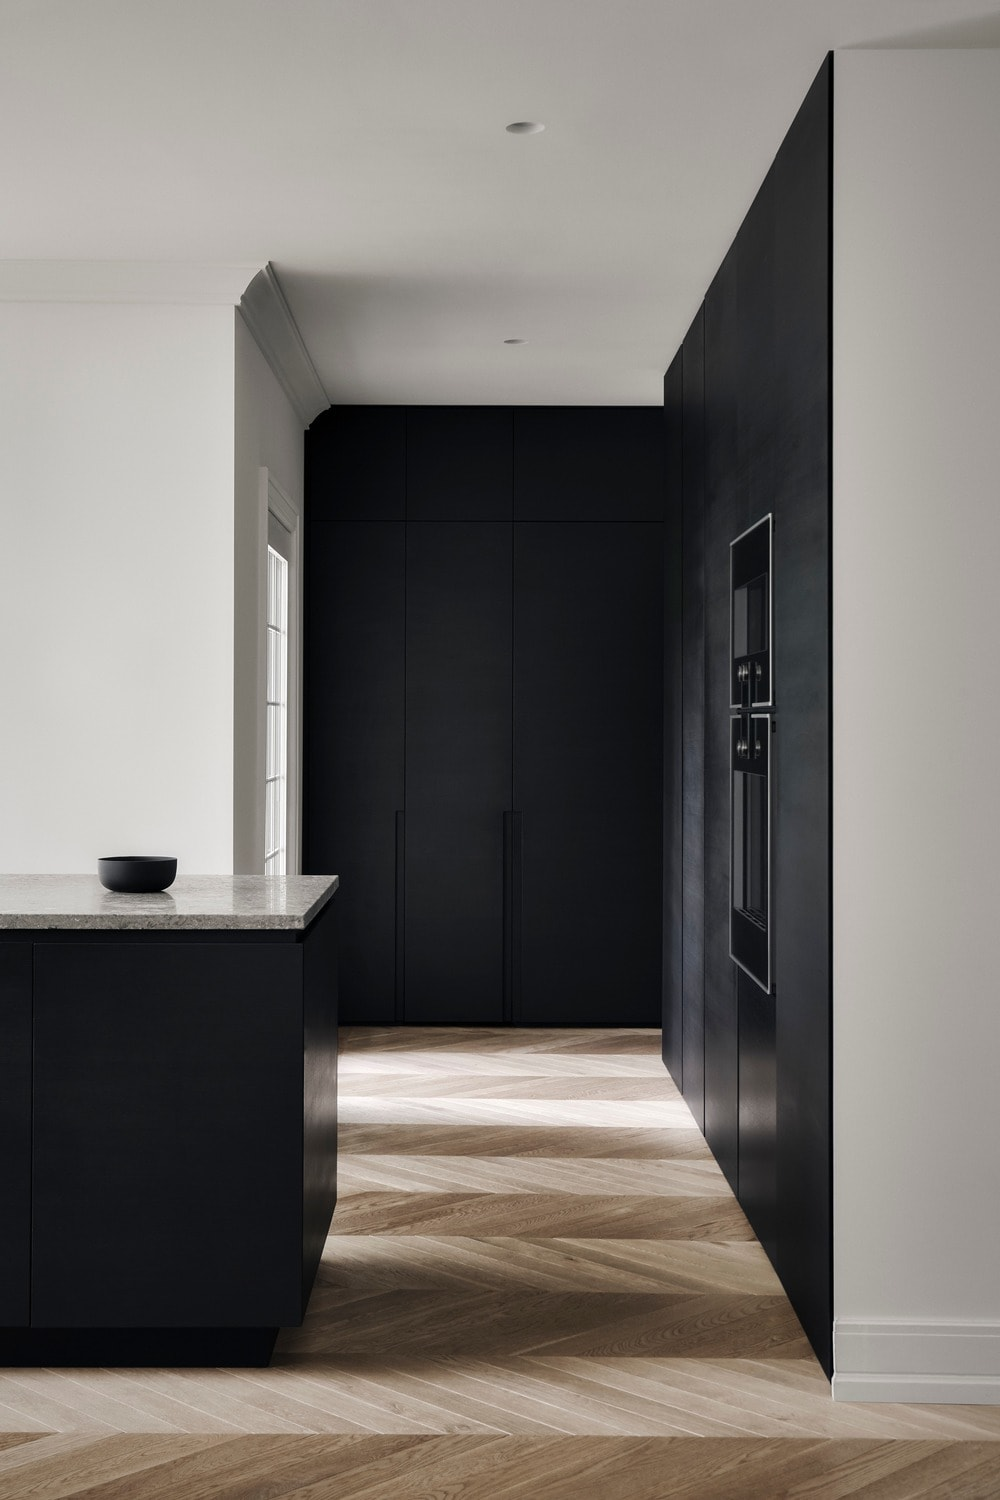 The kitchen has a large black kitchen island that is contrasted by the white marble countertop.